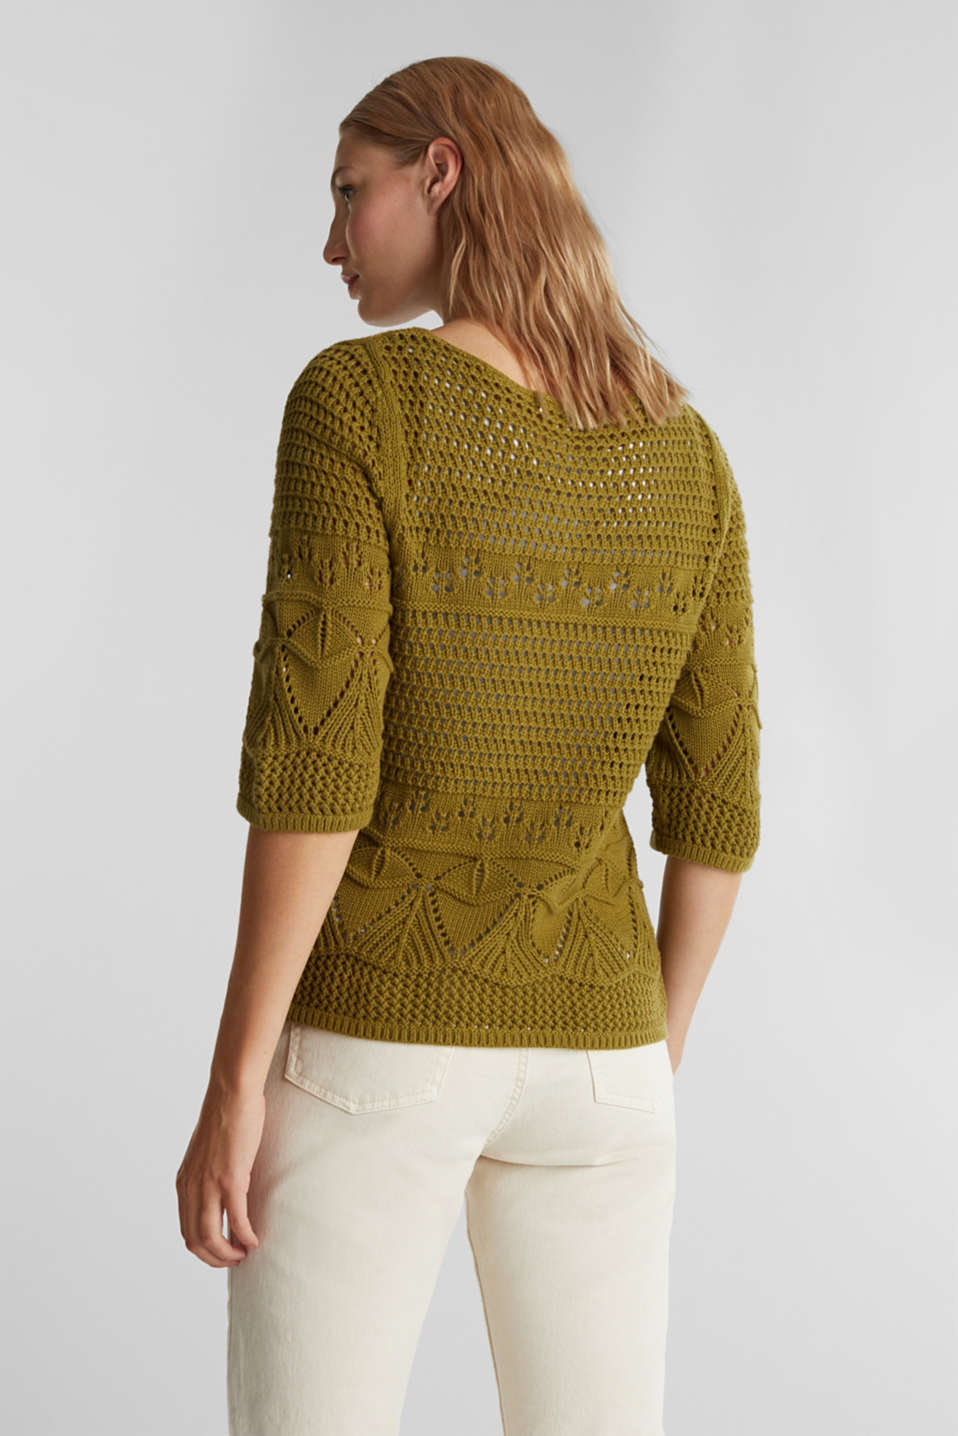 Crocheted jumper made of 100% organic cotton, OLIVE, detail image number 3